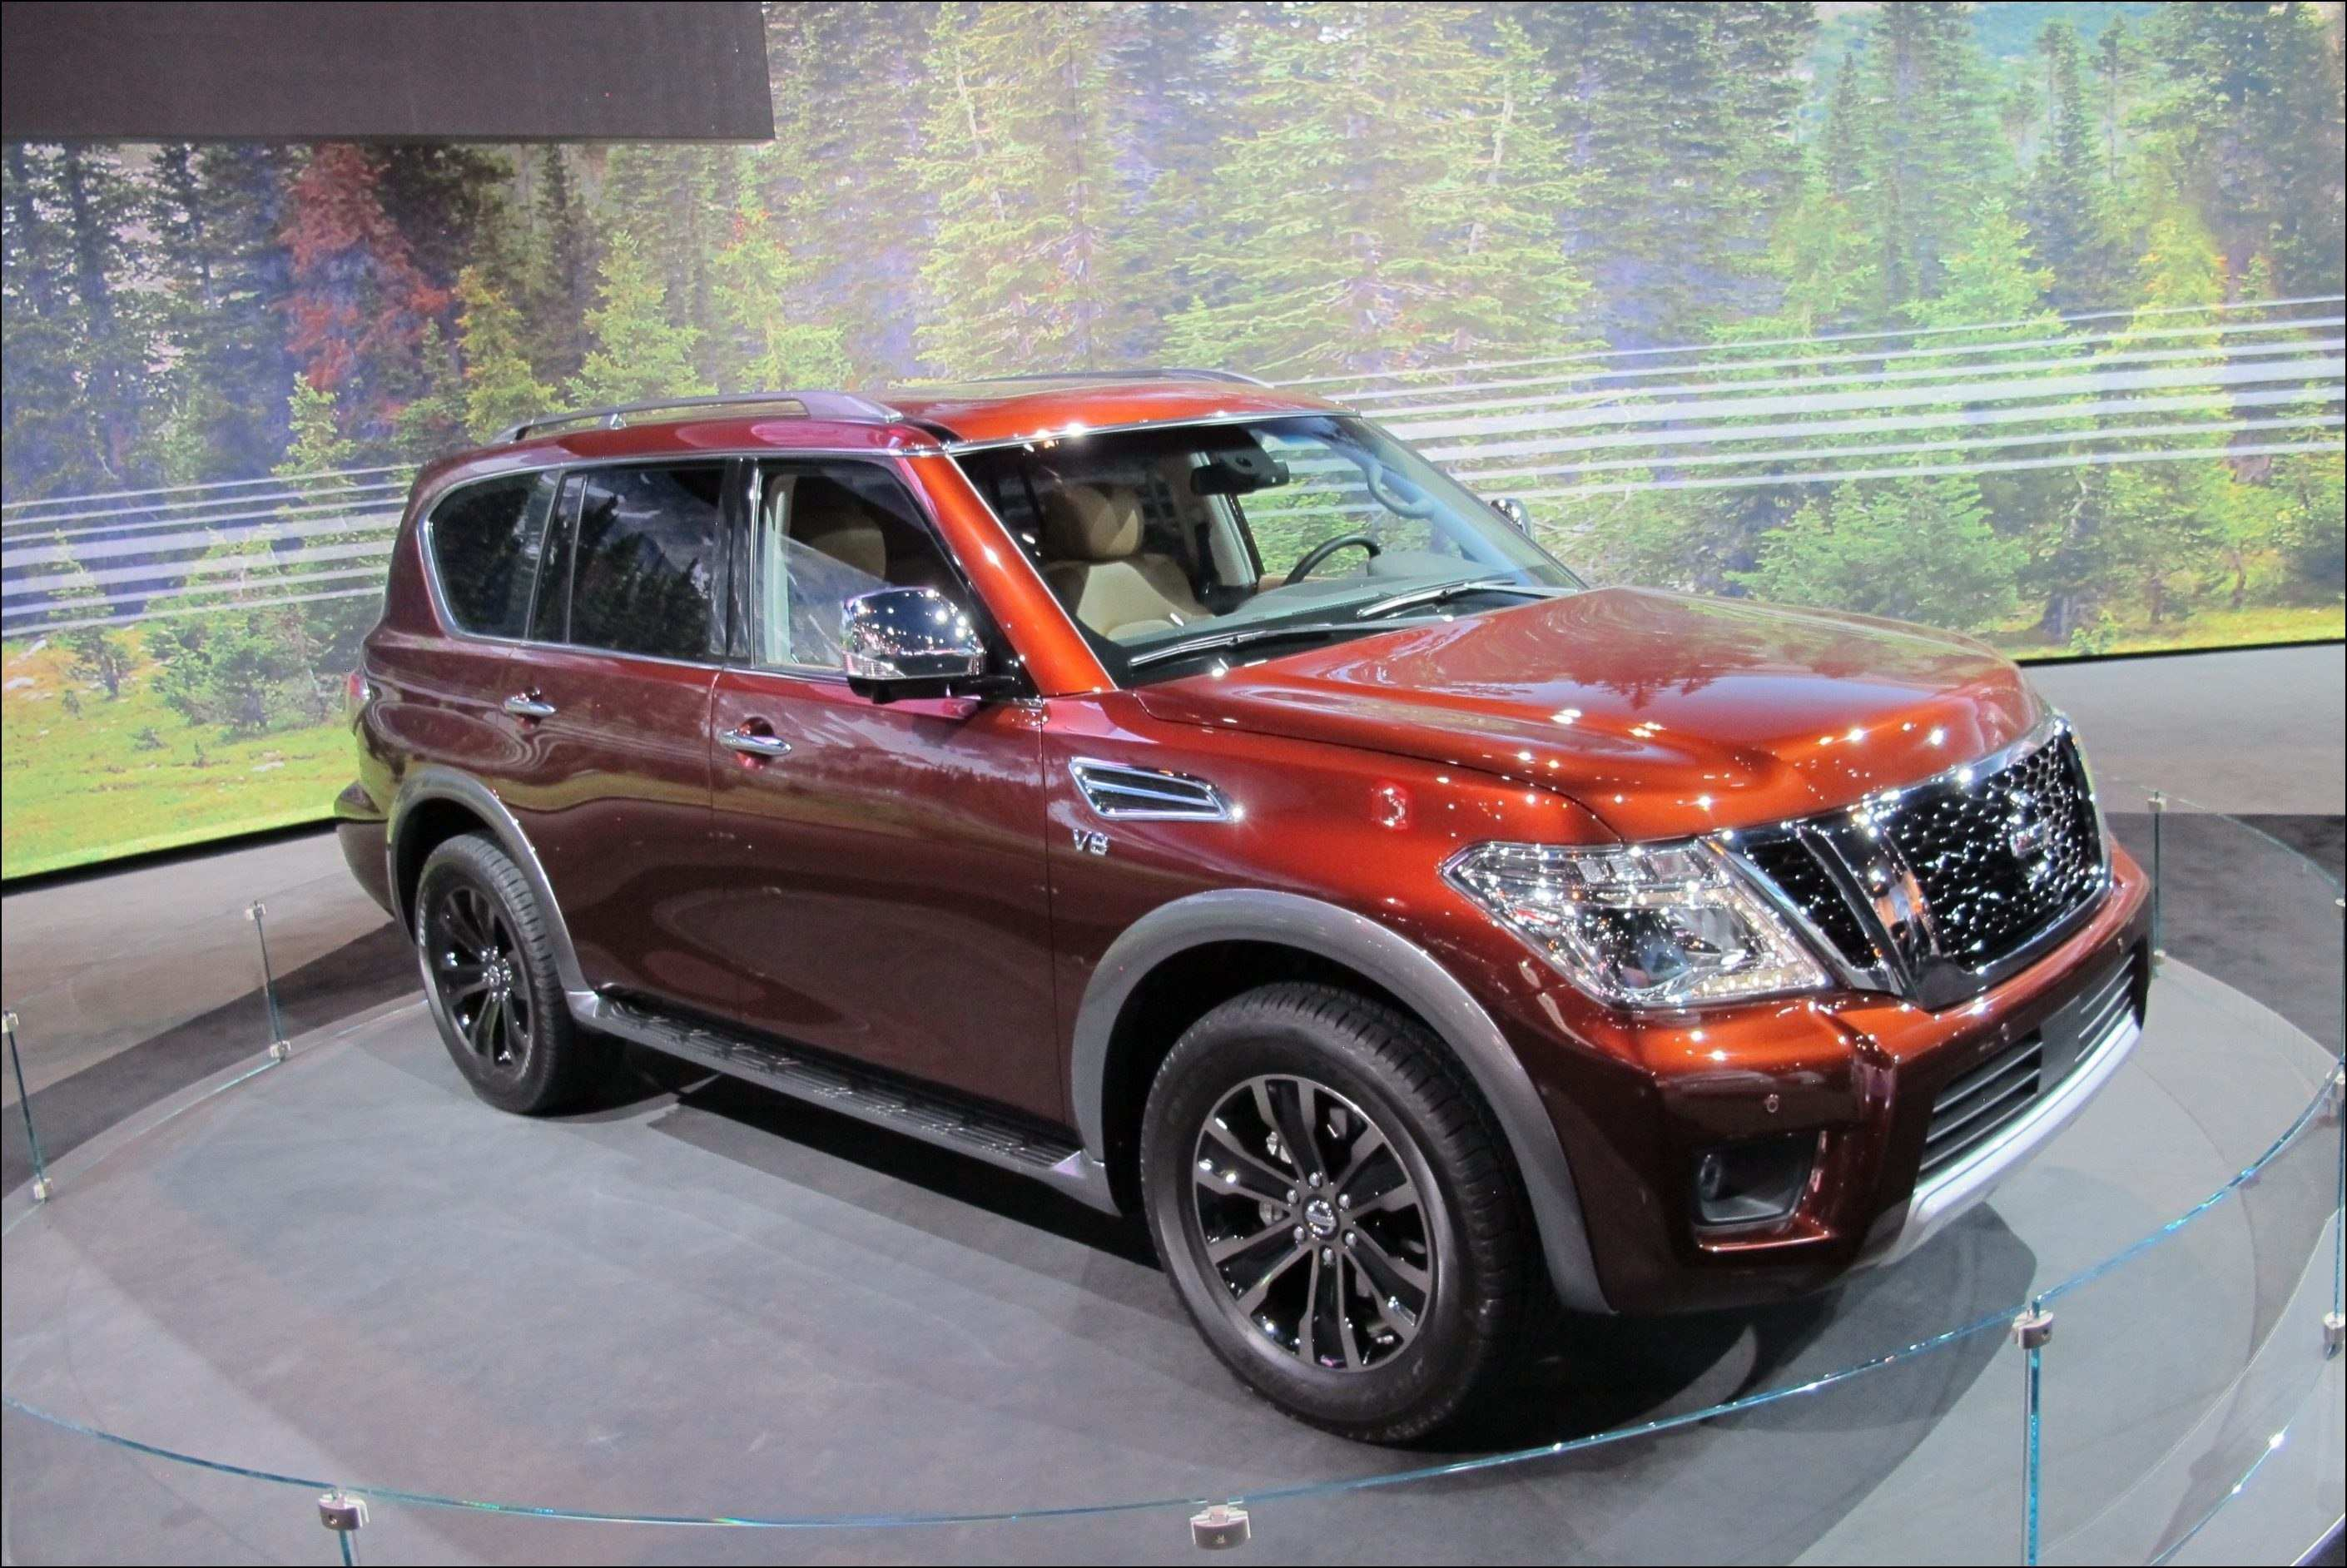 31 All New Nissan Armada 2020 Price Research New for Nissan Armada 2020 Price